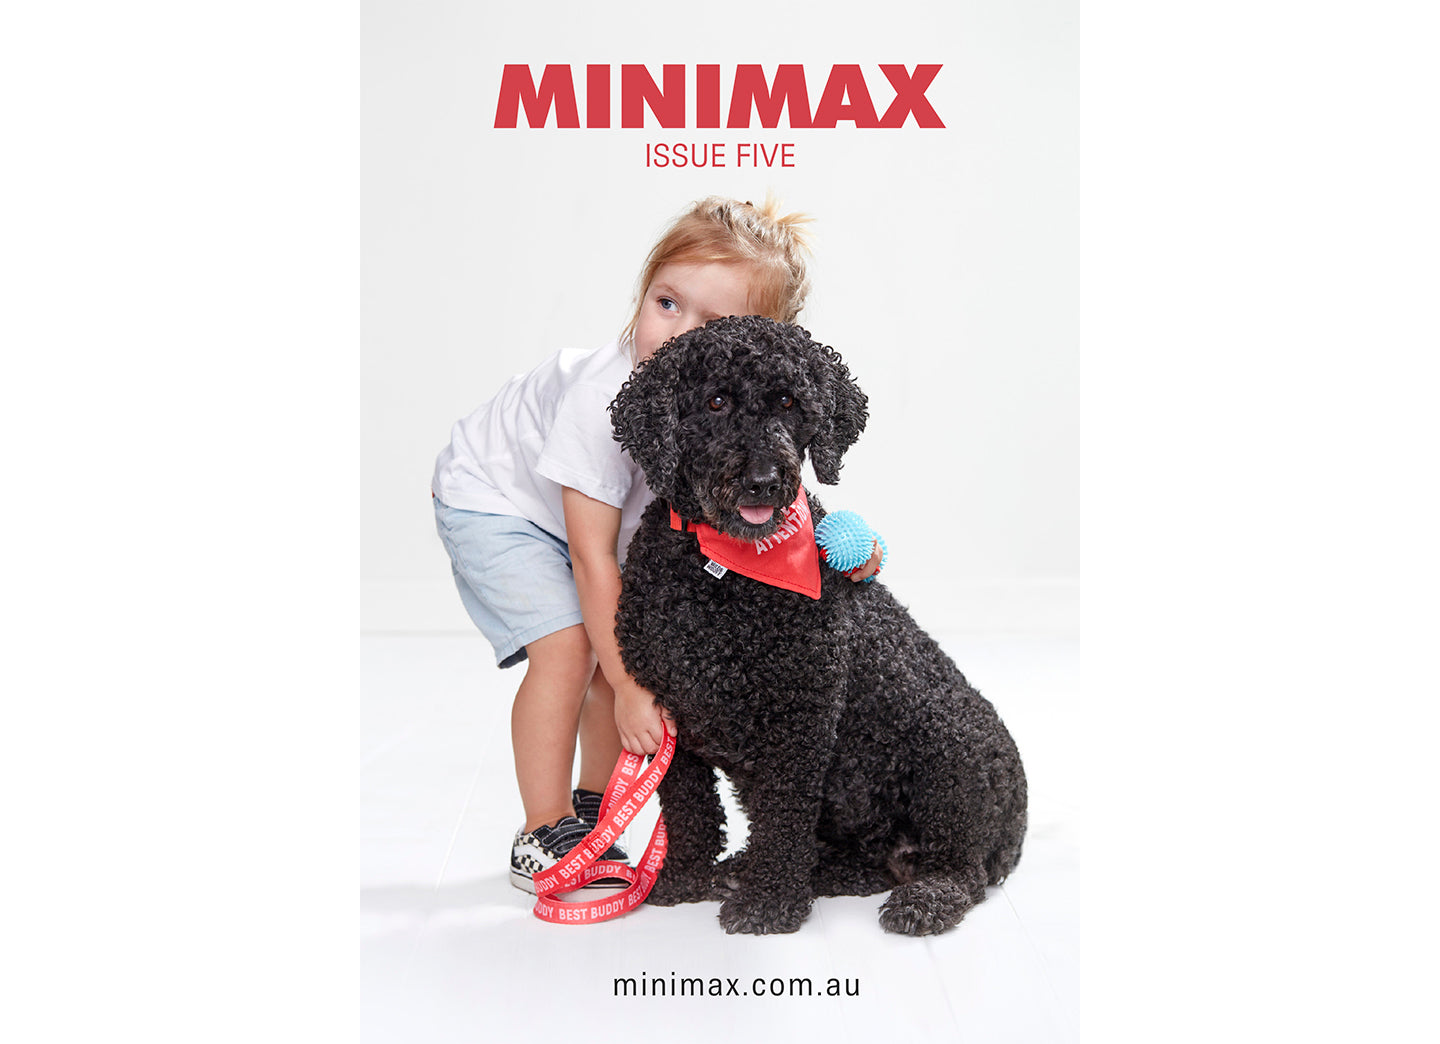 The Minimax Magazine